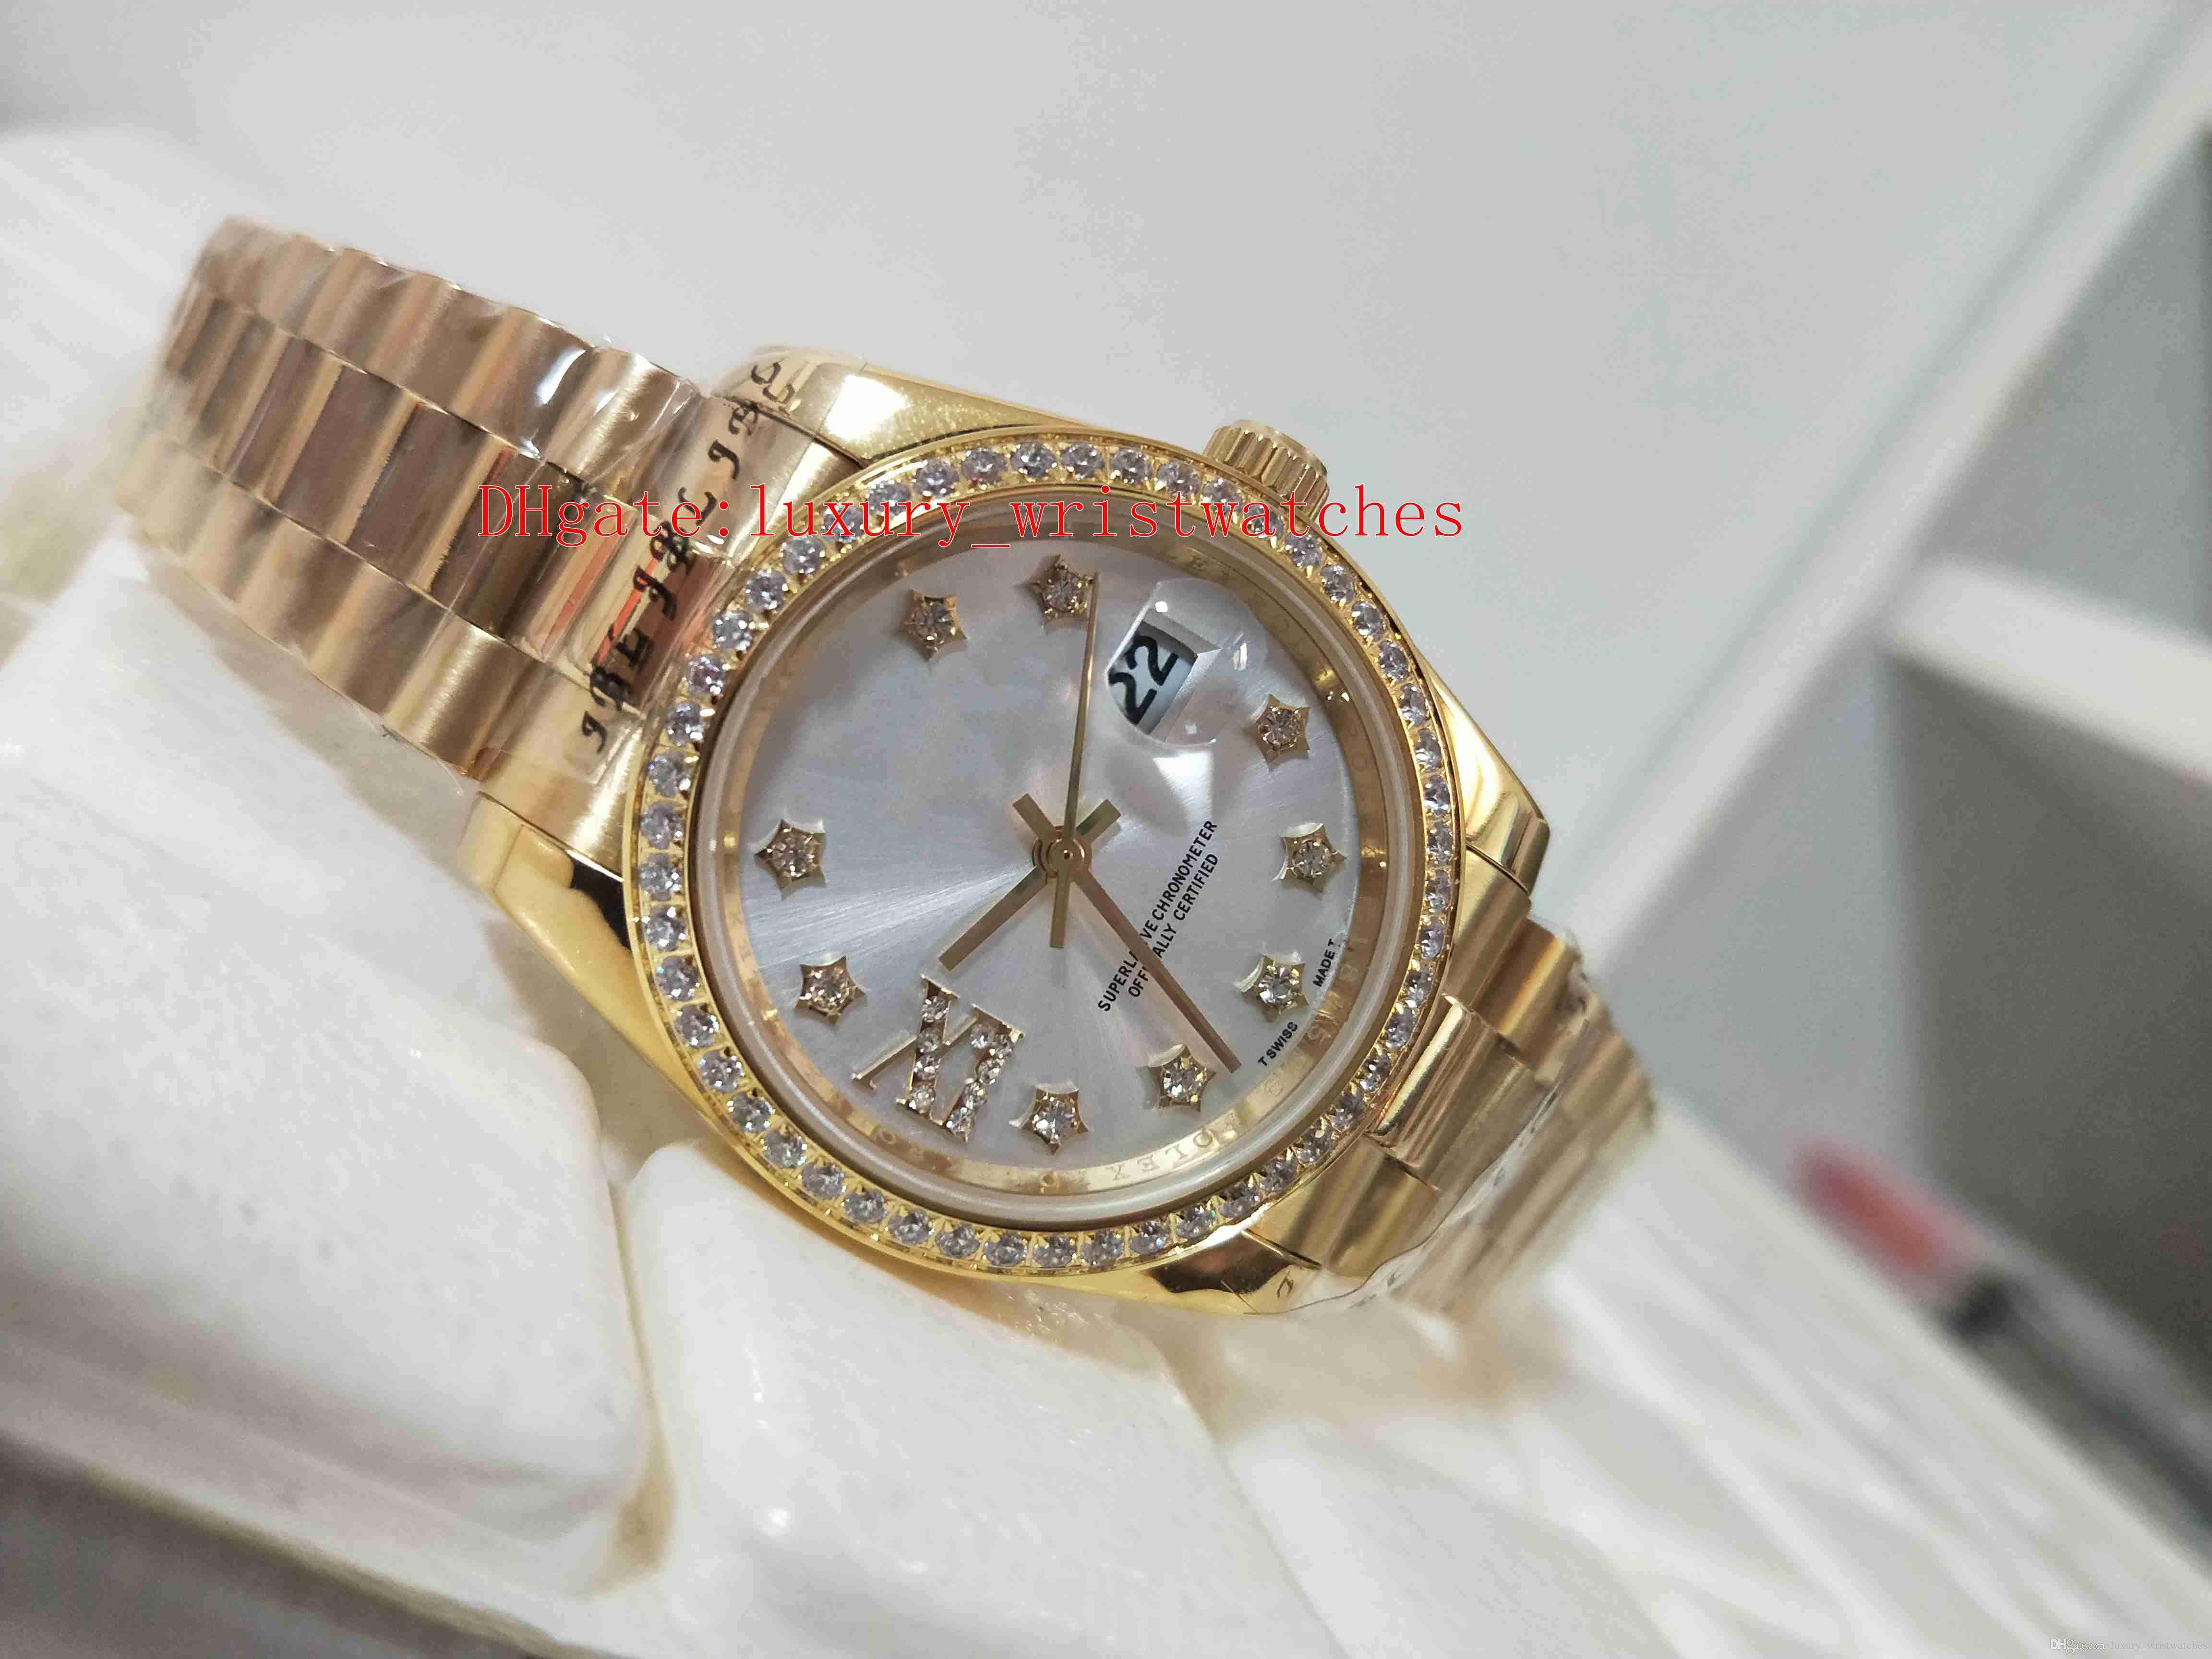 Excellent High quality watch Datejust Pearlmaster 81298 36mm 31mm Diamond Asia 2813 Movement Mechanical Automatic Ladies Women's Watches